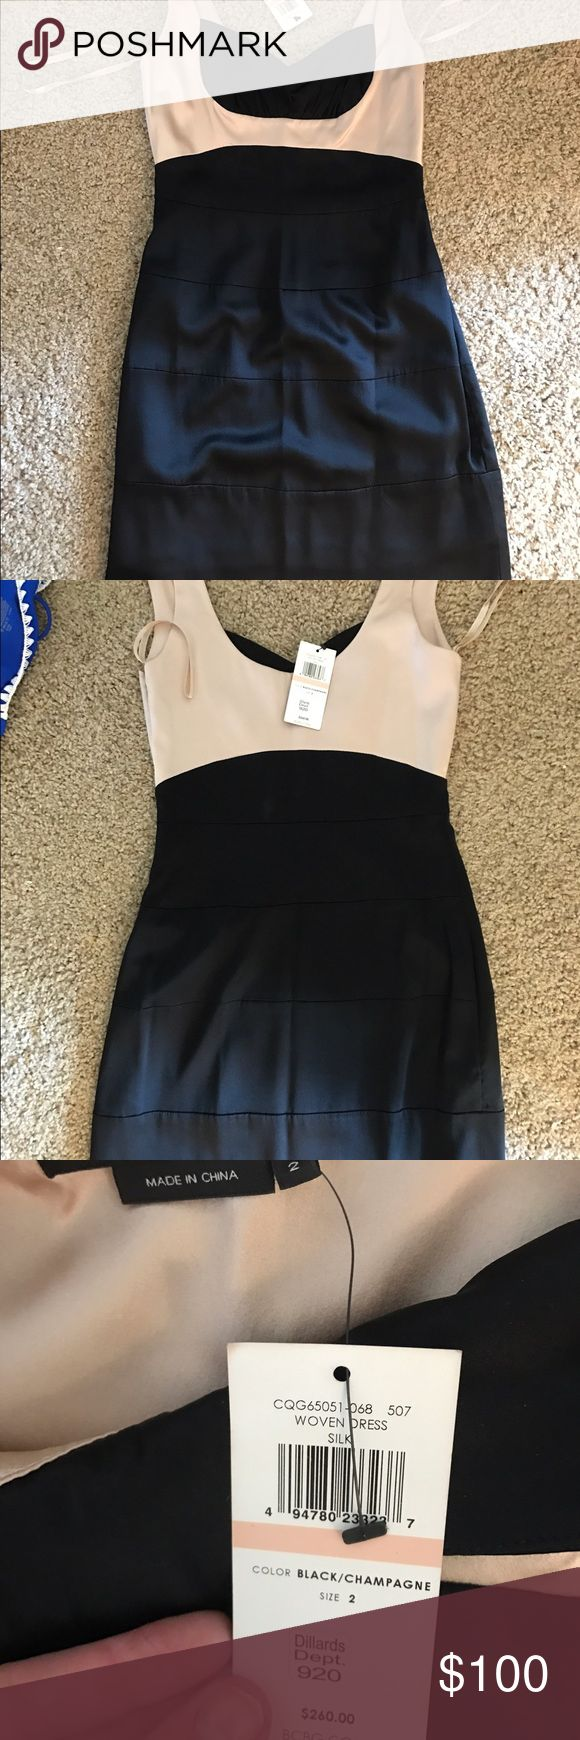 BCBG black and nude bodycon dress Mini dress with tight fit, good for curves.  Size 2, never worn!  Silly material with lining. BCBG Dresses Mini